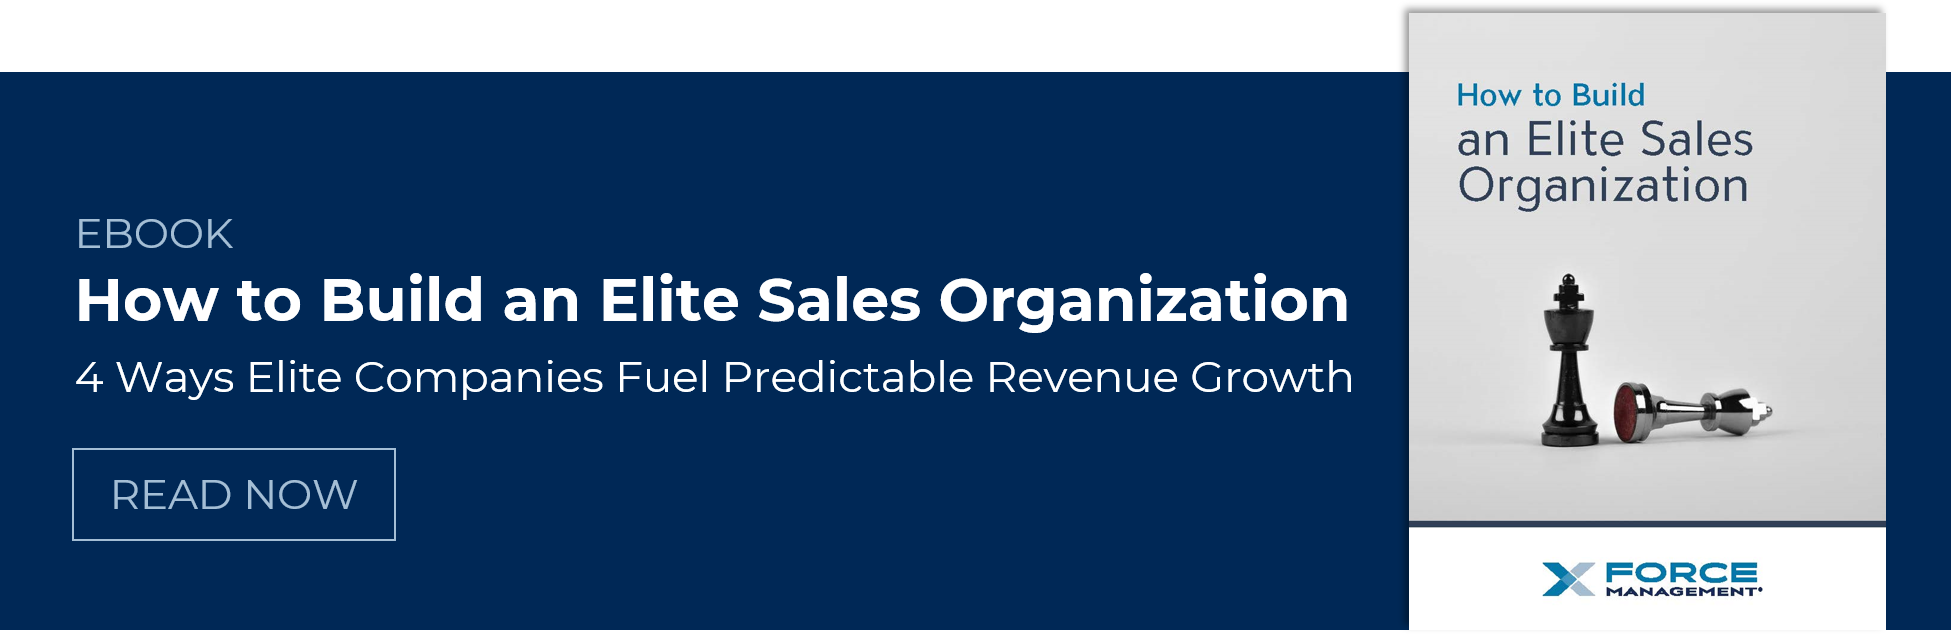 how-to-lead-elite-sales-org